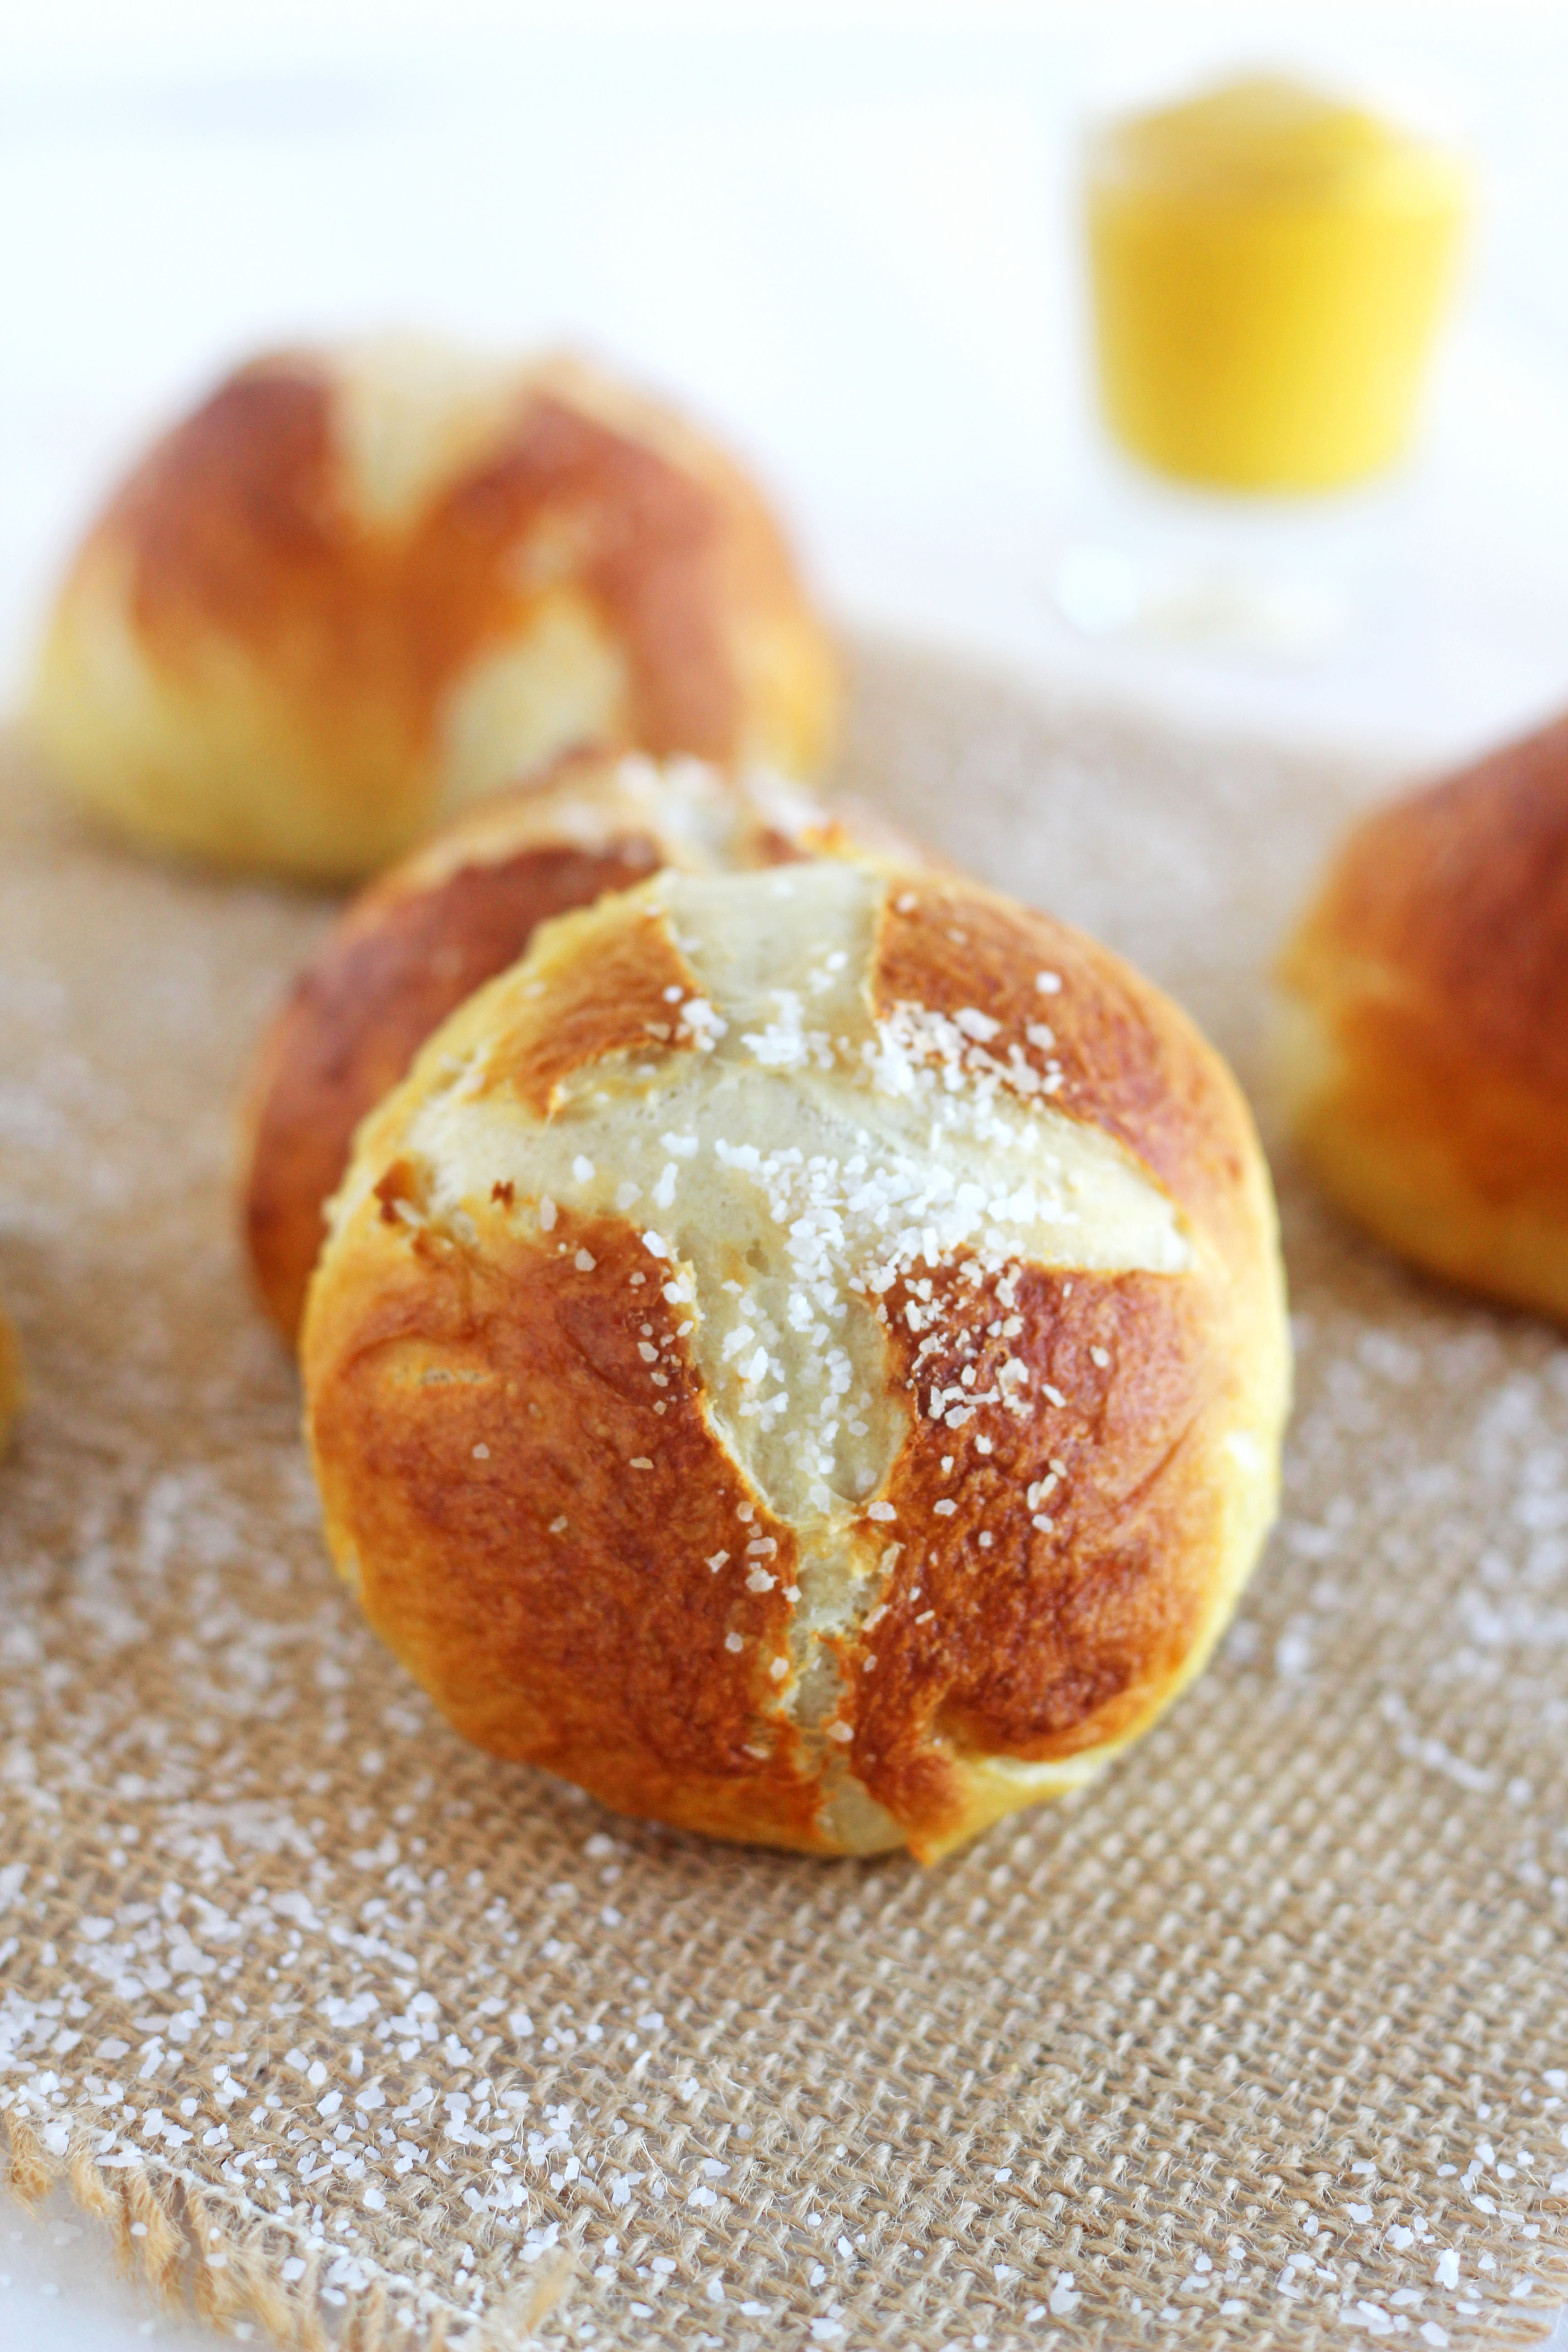 Pretzel rolls do the same wonders for me. I love eating them alone or ...